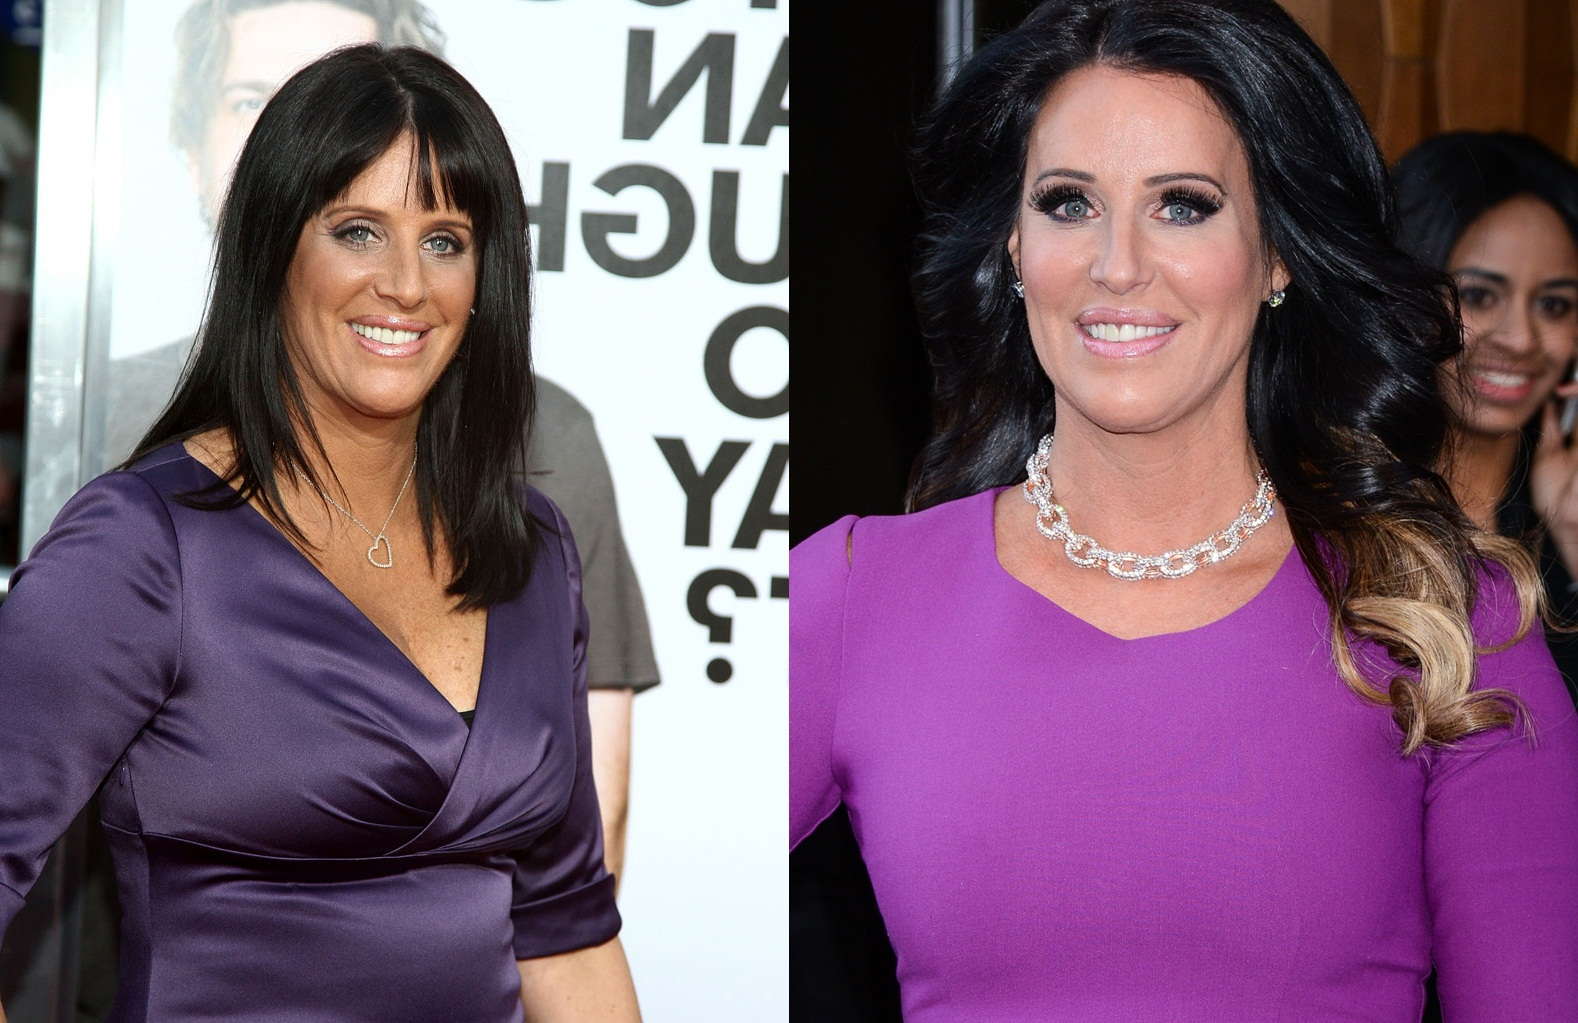 Patti Stanger Breast Reduction Surgery Before and After Boob Job Photos 1